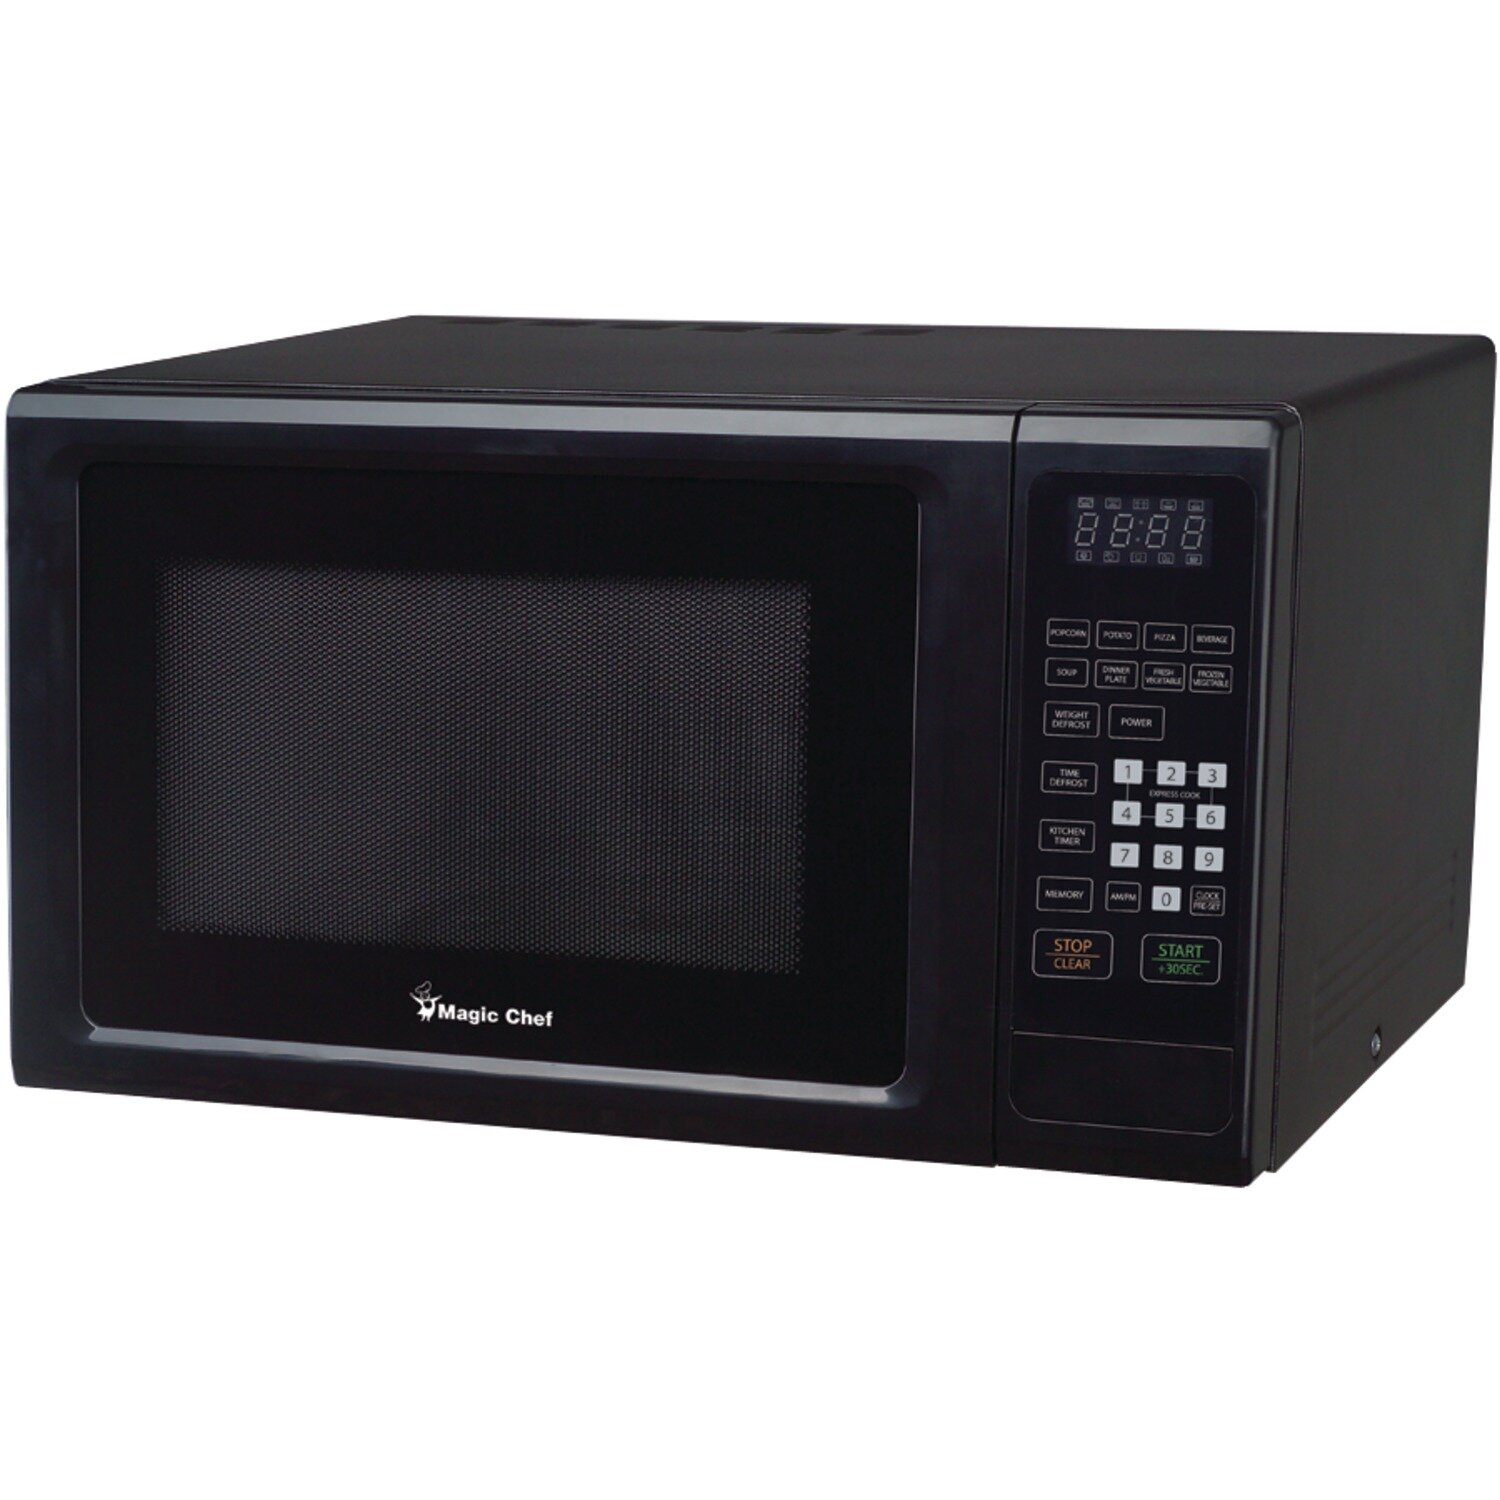 Countertop Microwave Sale Canada : ... Chef 1.1 cu. ft. 1000W Countertop Microwave & Reviews Wayfair.ca